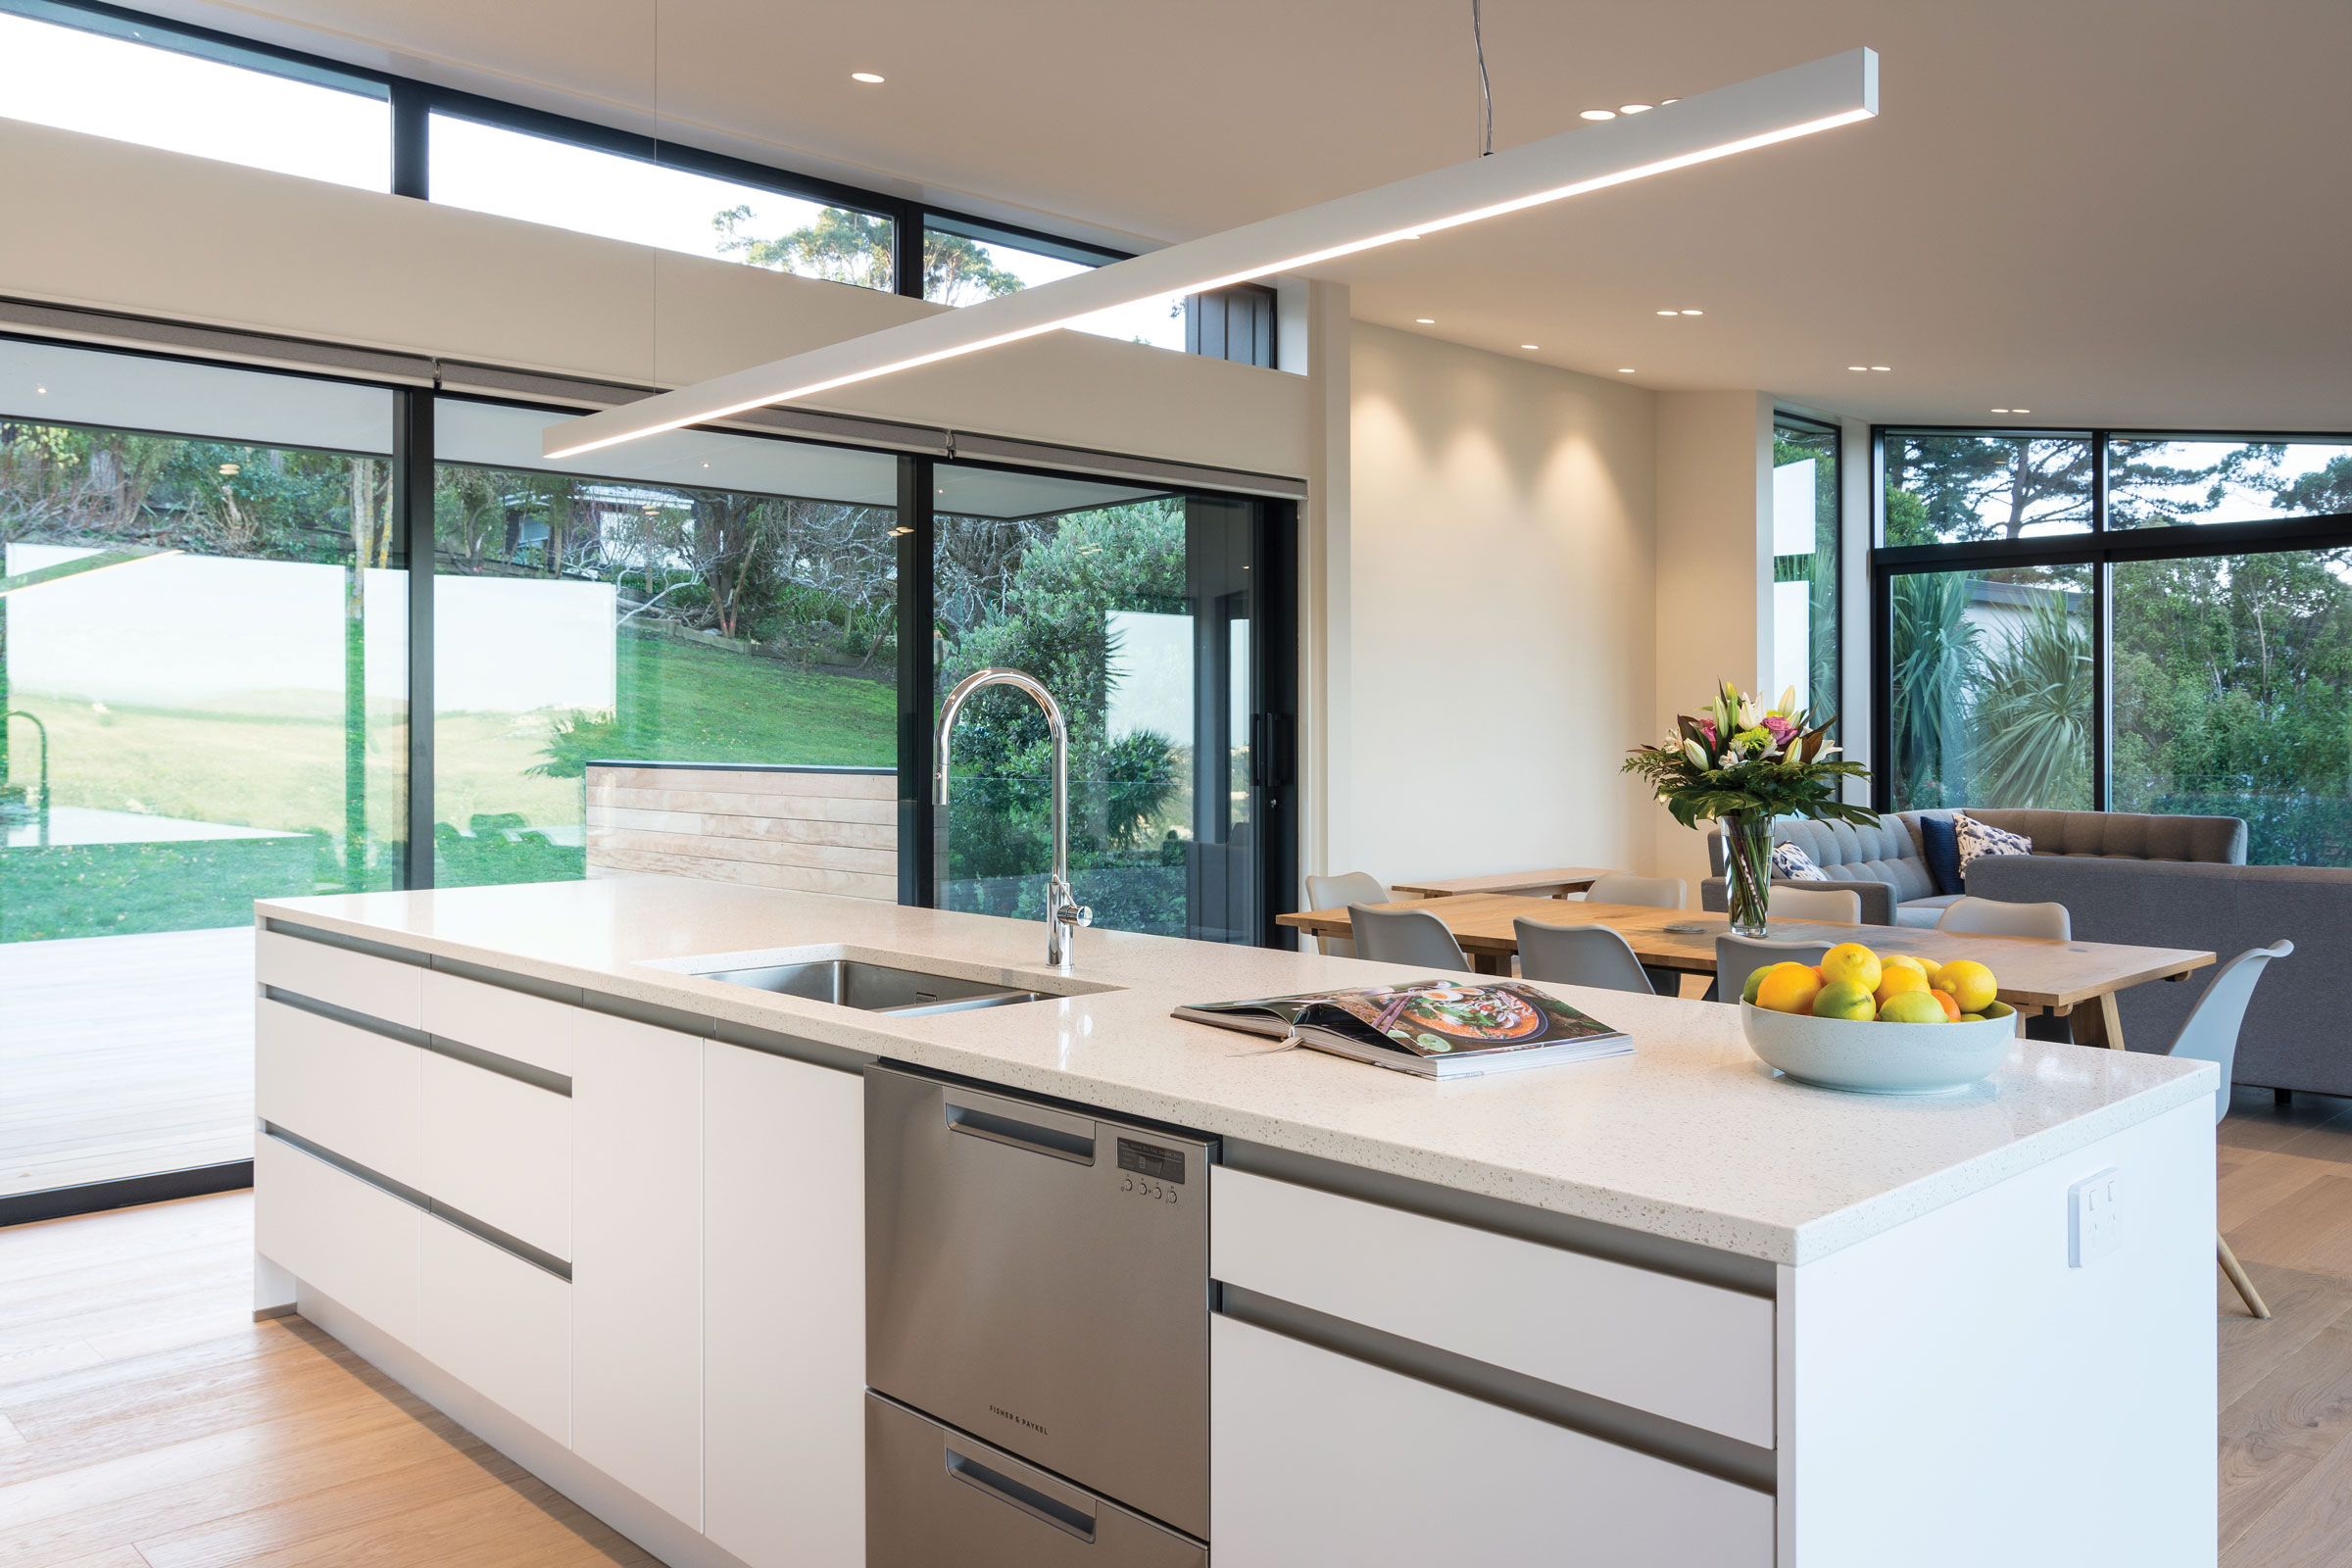 BENCHTOP  Primestone Risotto Pebble was the benchtop choice, finished with Riva concrete for a stunning contrast.